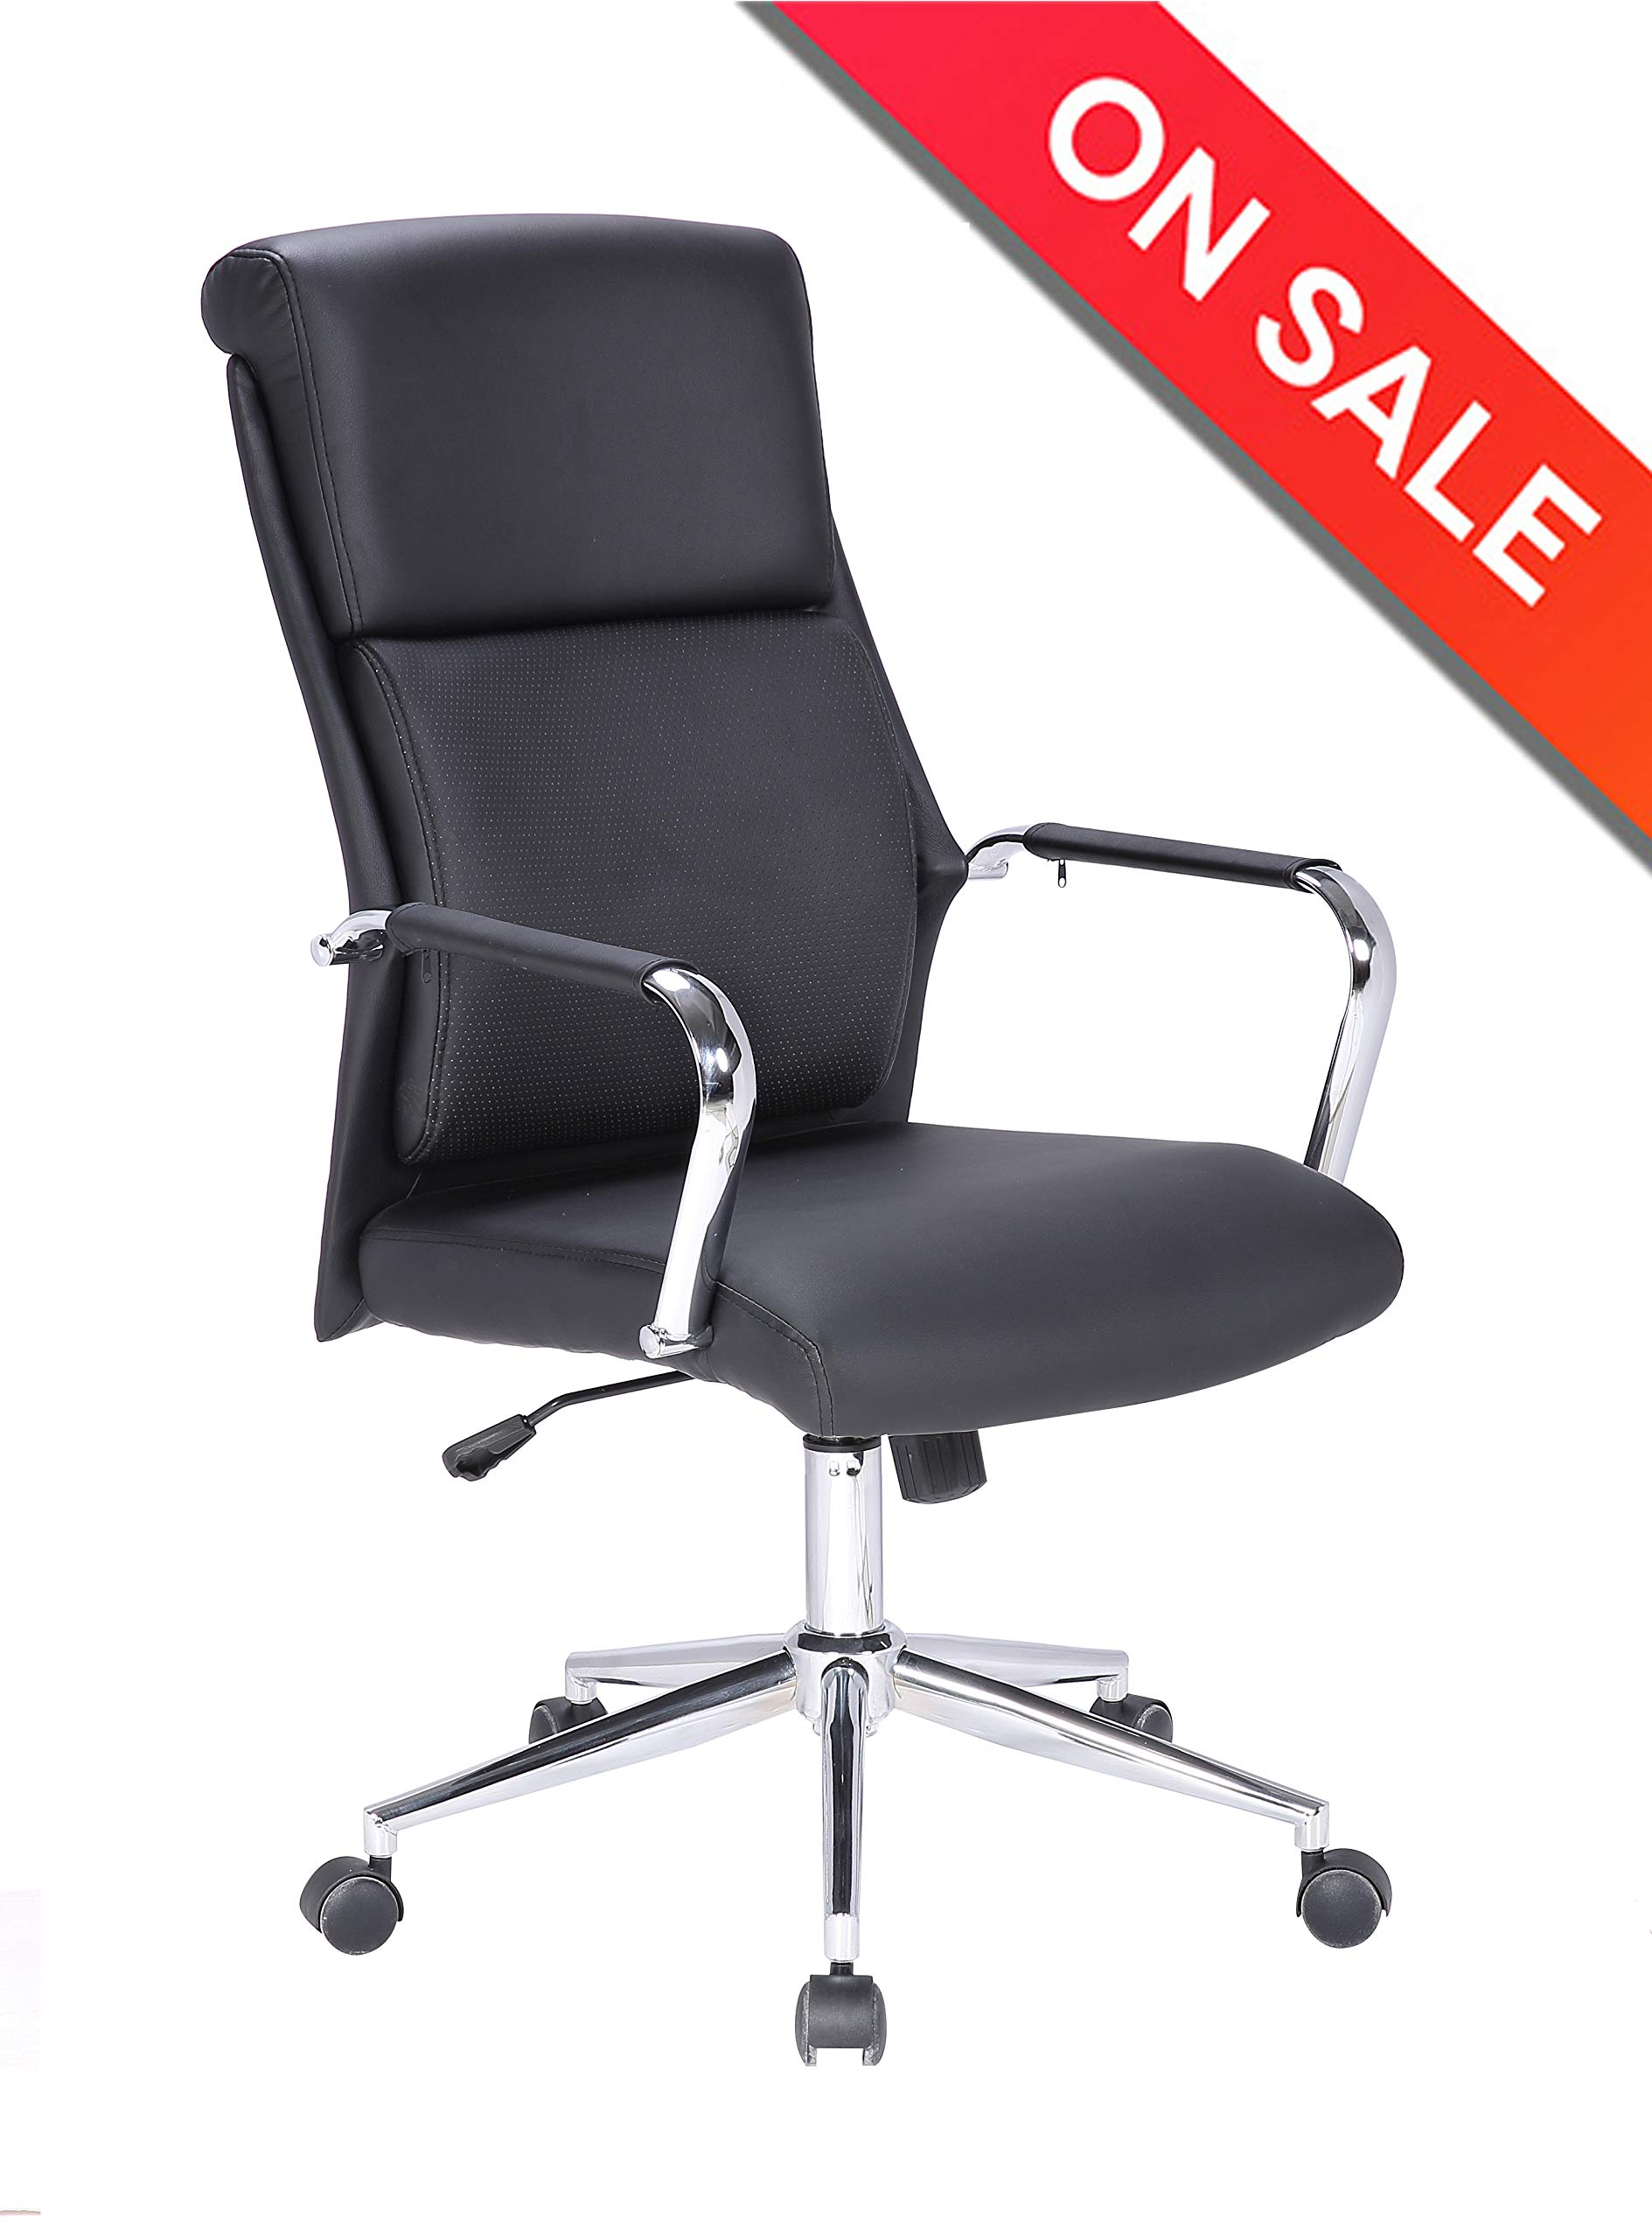 LCH High Back Leather Classic Office Chair with Adjustable Tilt Angle - Computer Desk Chair with Thick Padding for Comfort and Ergonomic Design for Lumbar Support by LCH